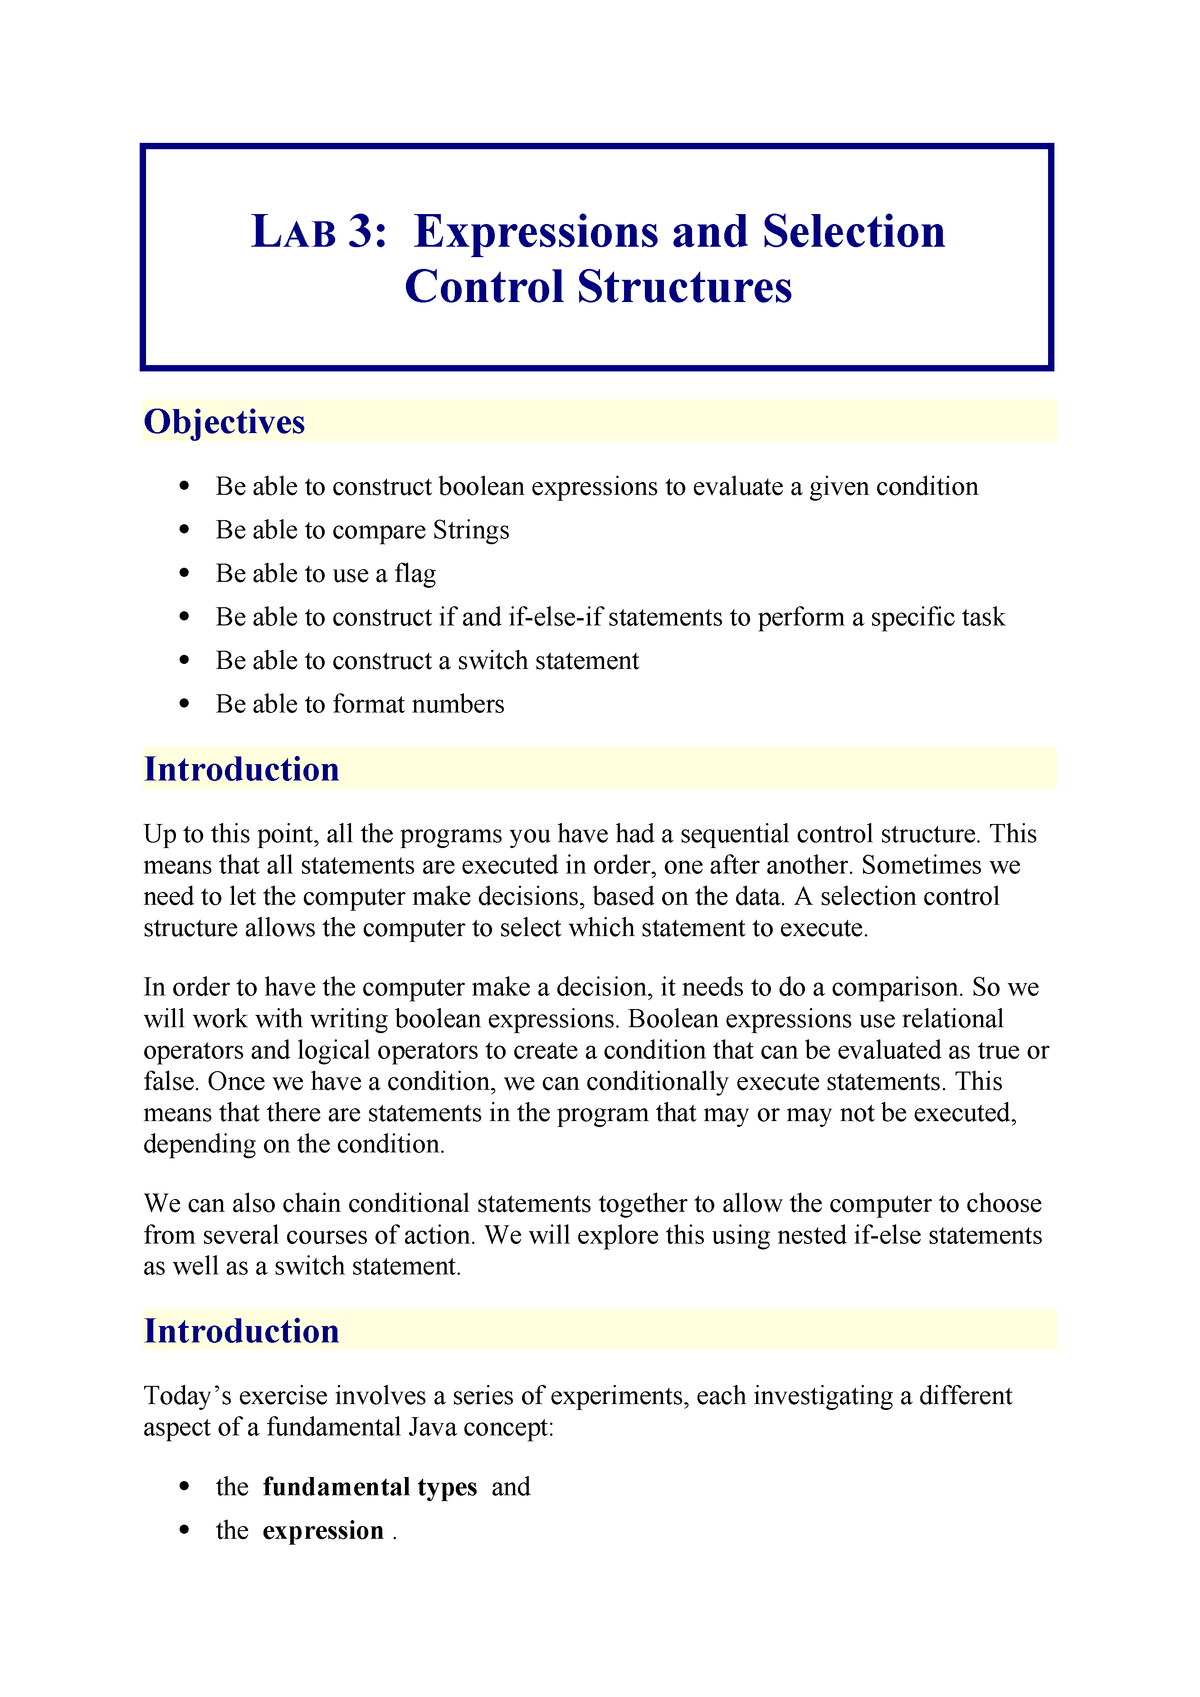 COMP131 Lab 3 - Expressions and Selection Control Structures